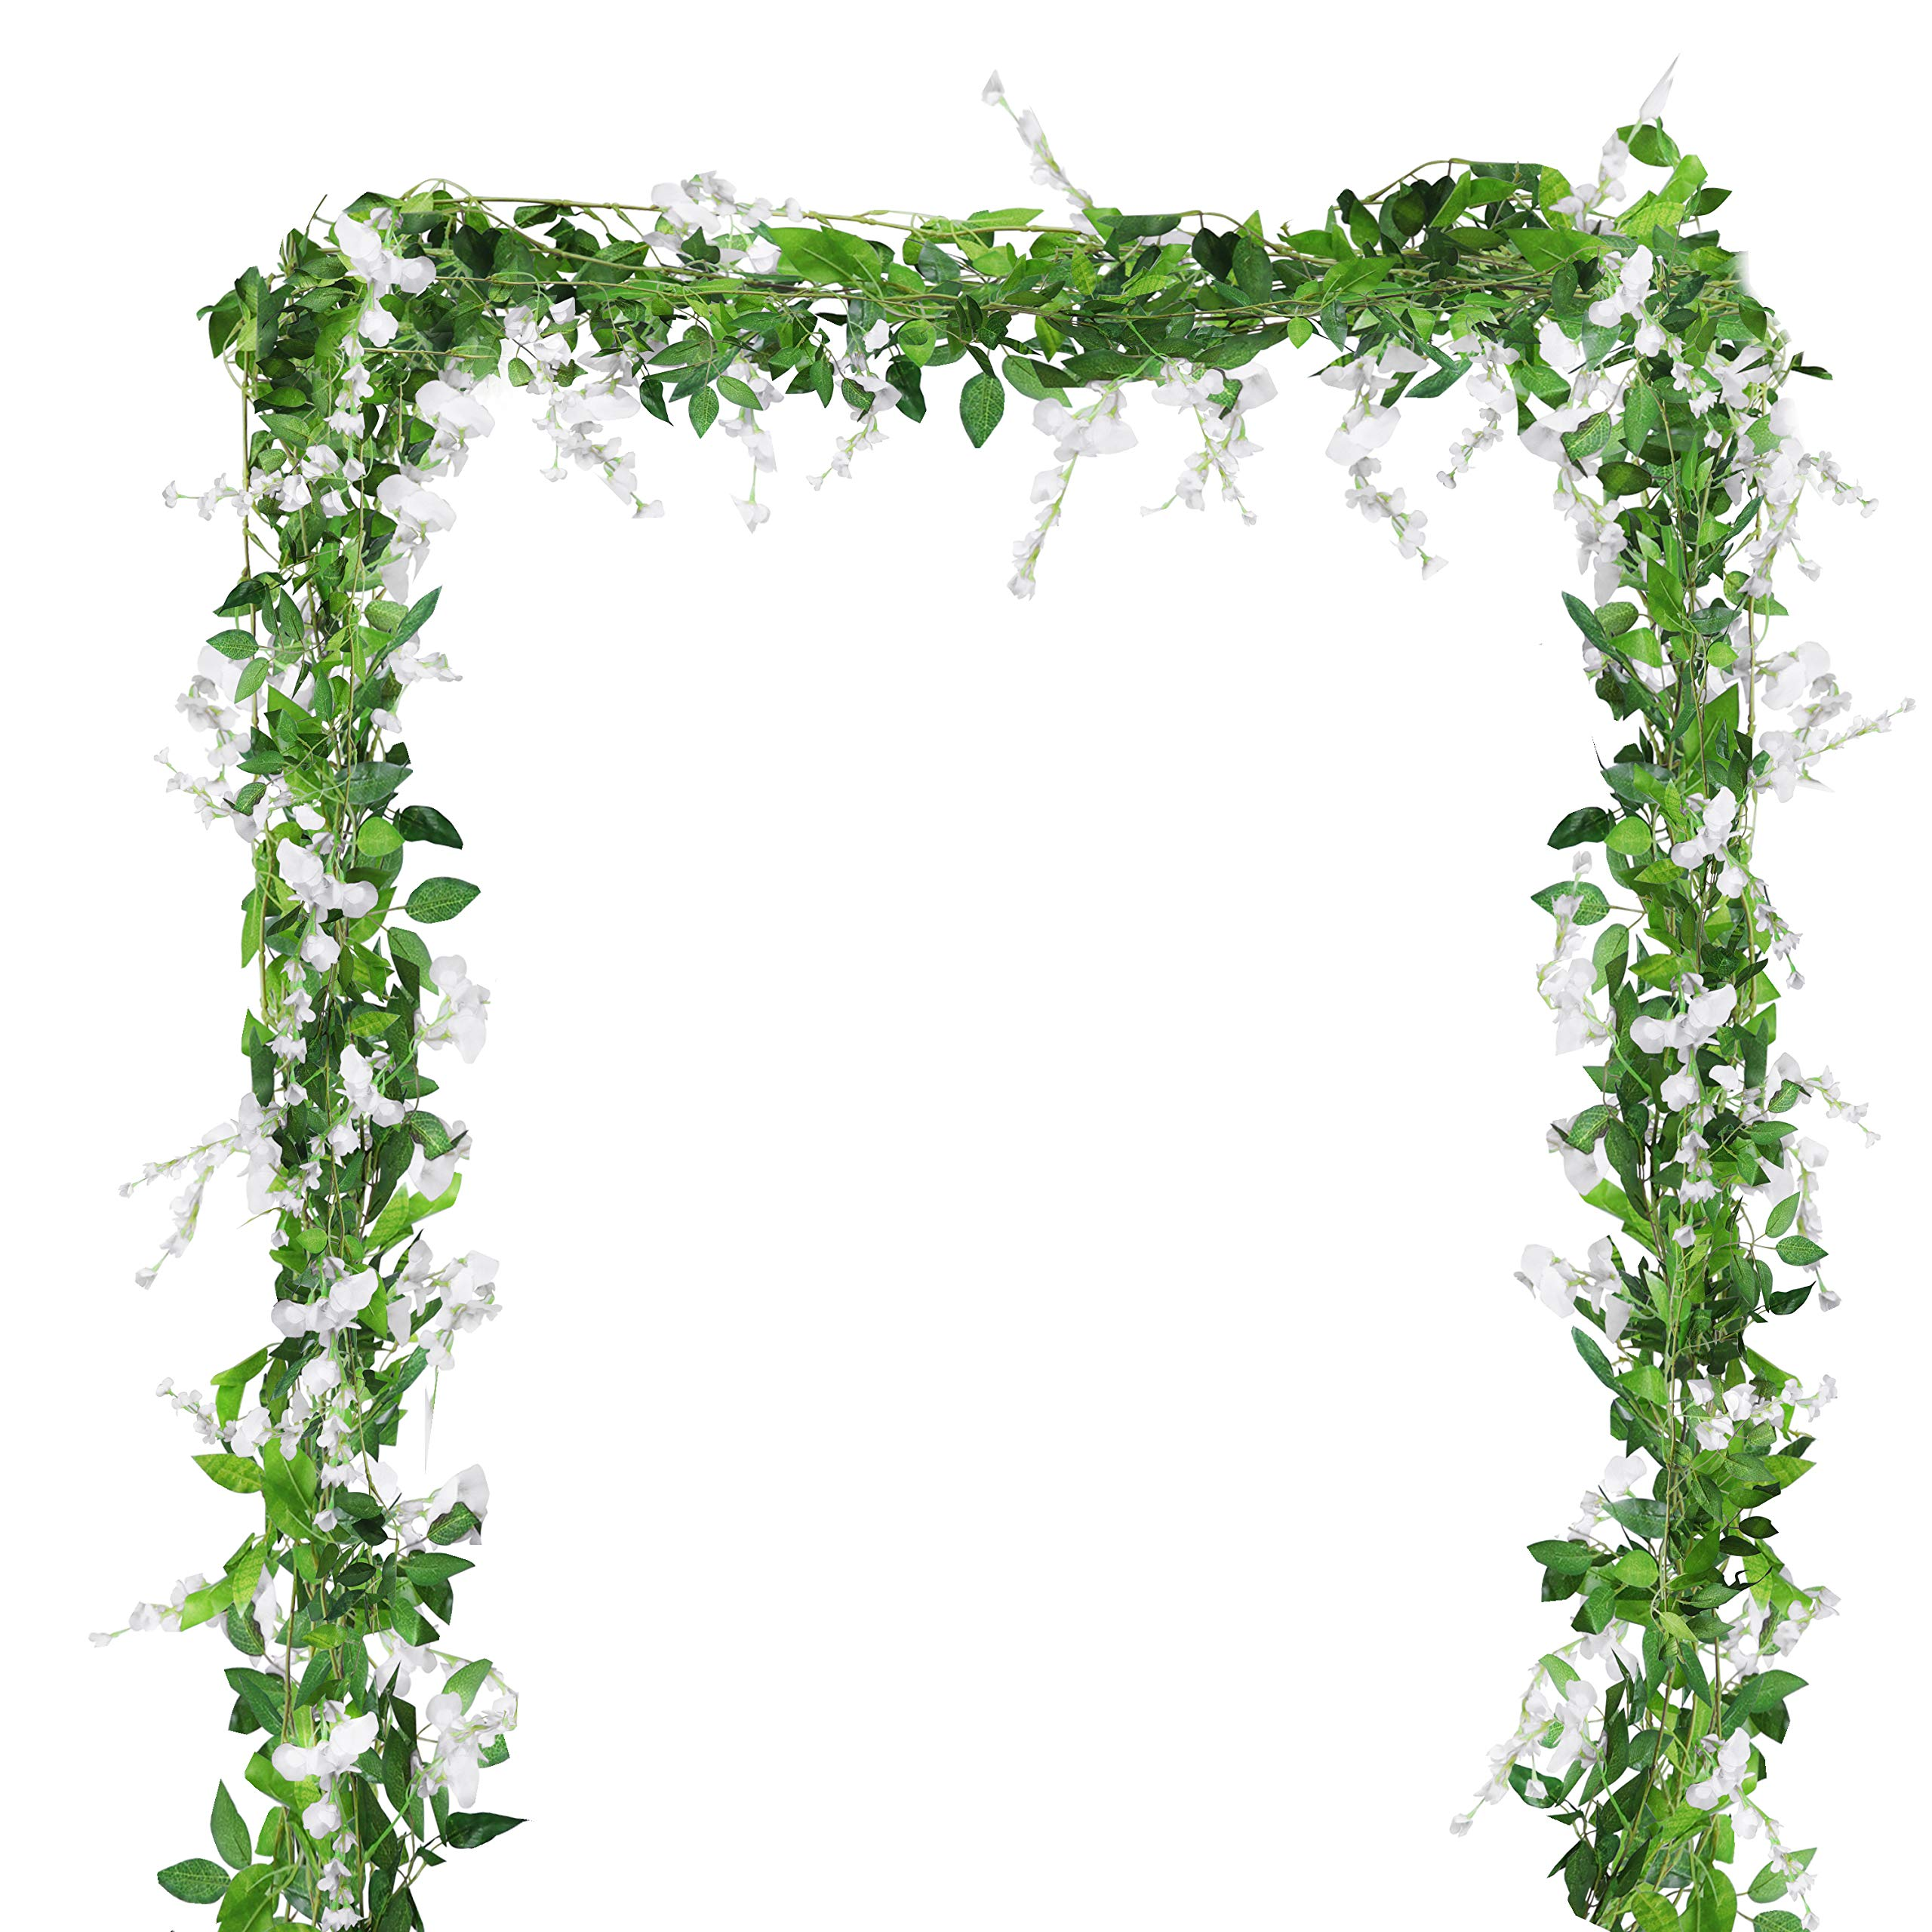 BELLE VOUS Wisteria Artificial Vine Garland (4 Pcs) - 2m (6.6ft per Piece) - White Fake Silk Removable Wisteria Flowers and Leaves for Garden, Wall Fence, Wedding Arch, Floral and Home Decorations